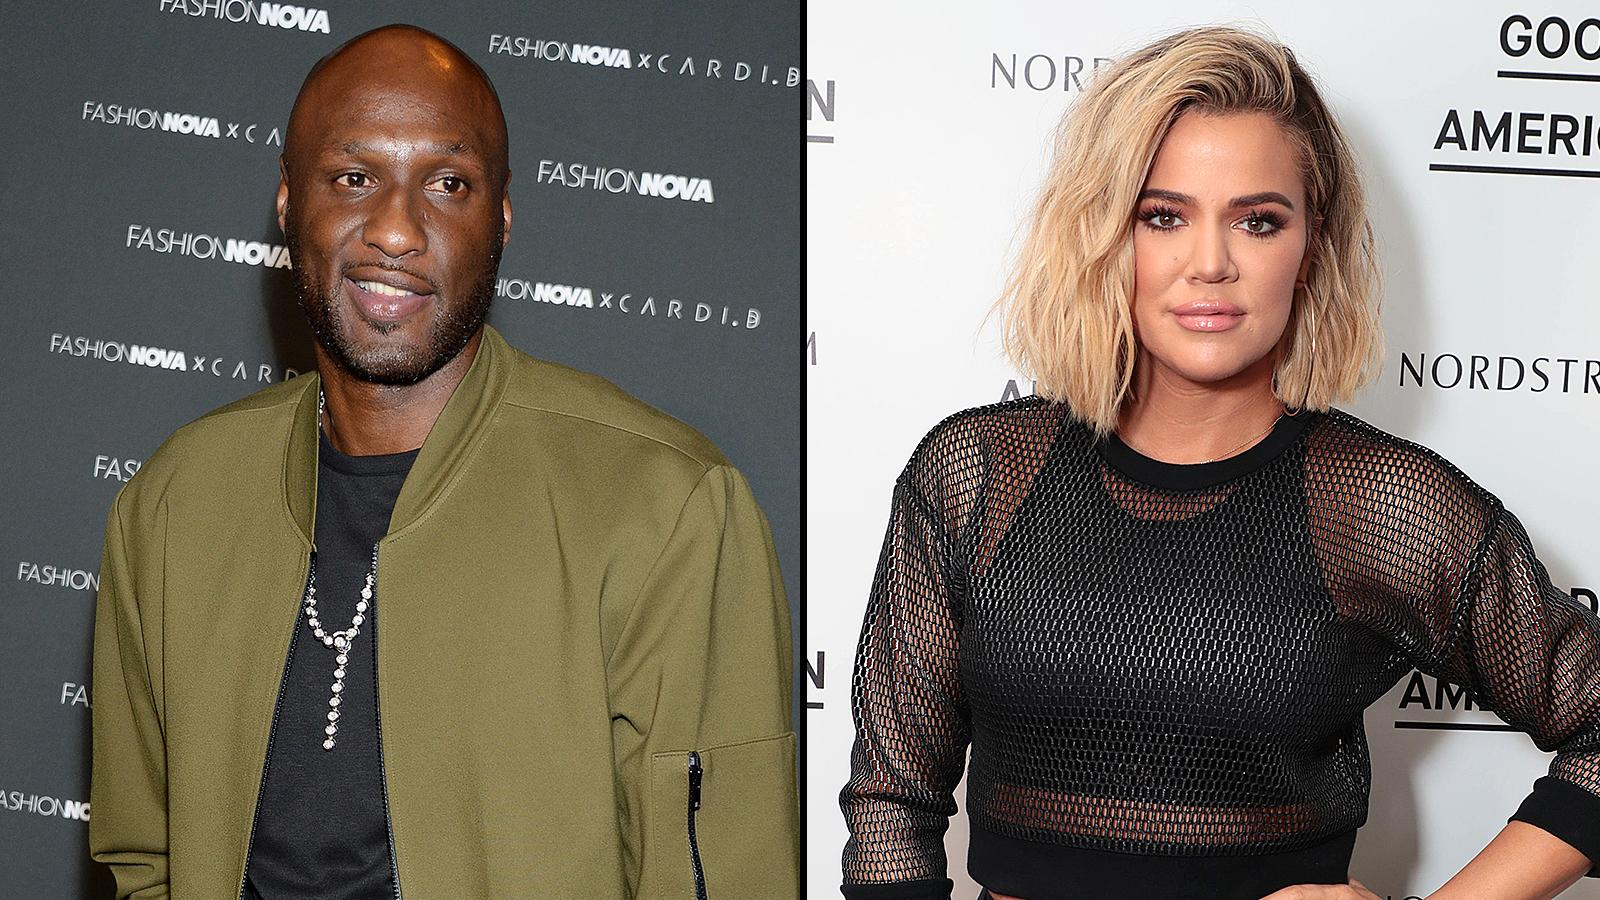 KUWK: Lamar Odom Raves Over His New Girlfriend For Being 'All Natural!' - Shading Ex Khloe Kardashian?